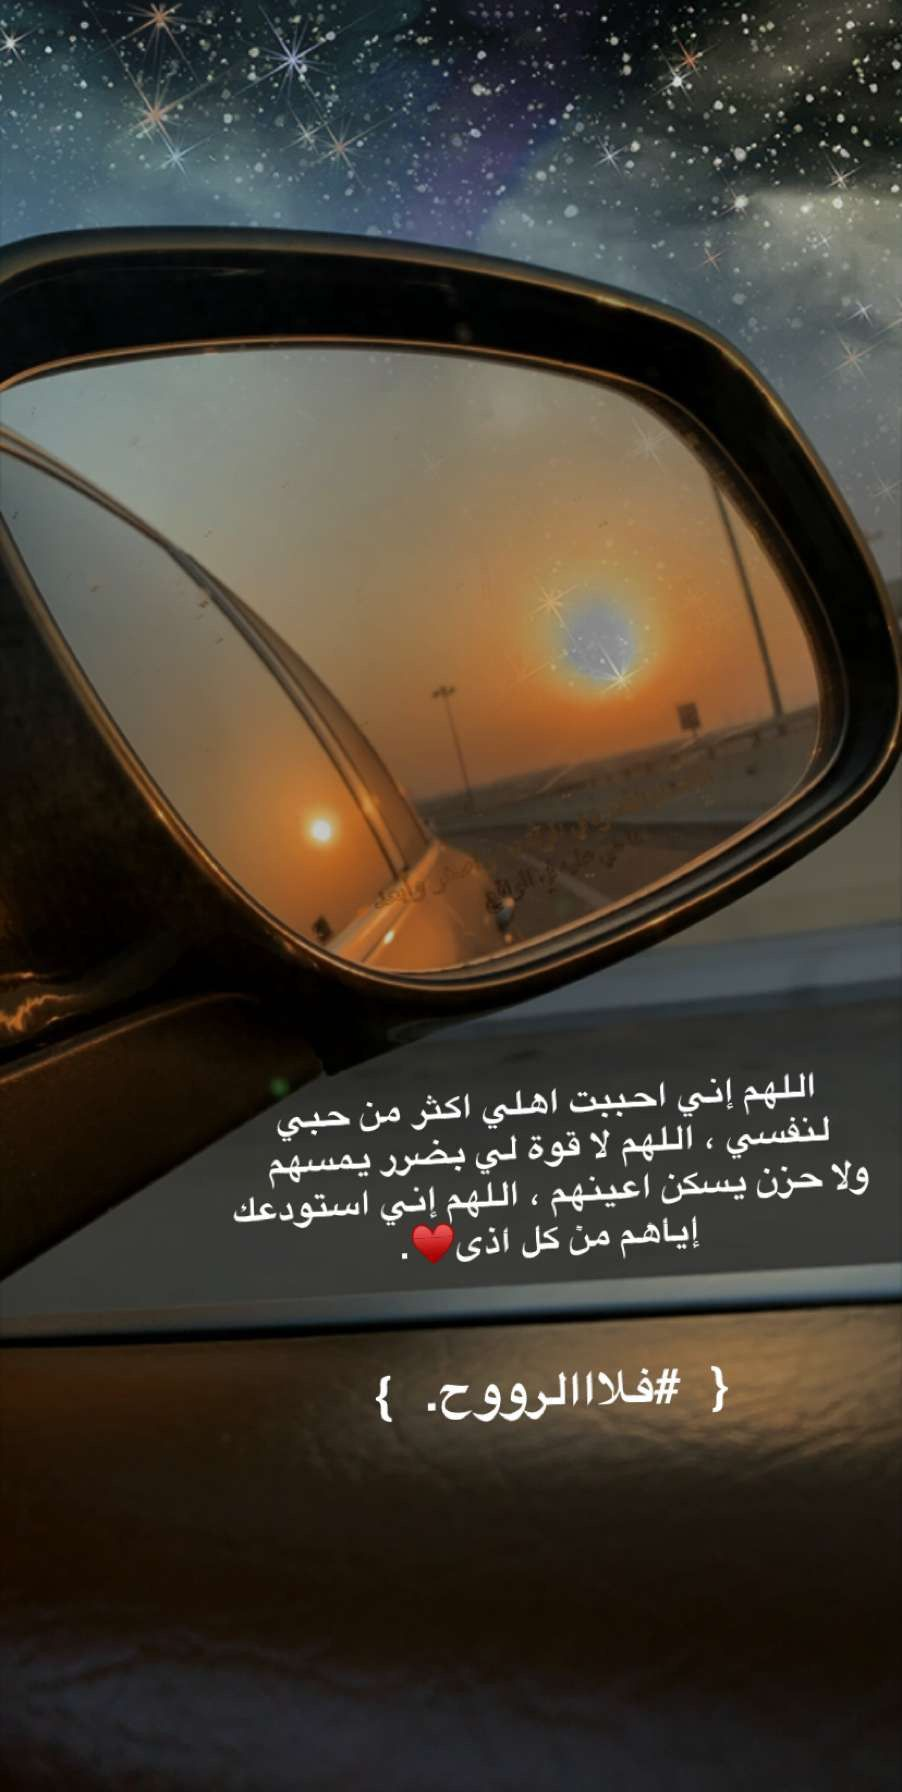 Pin By فـ لا الـ ـ رووح On اشعار Romantic Quotes Beautiful Words Arabic Quotes